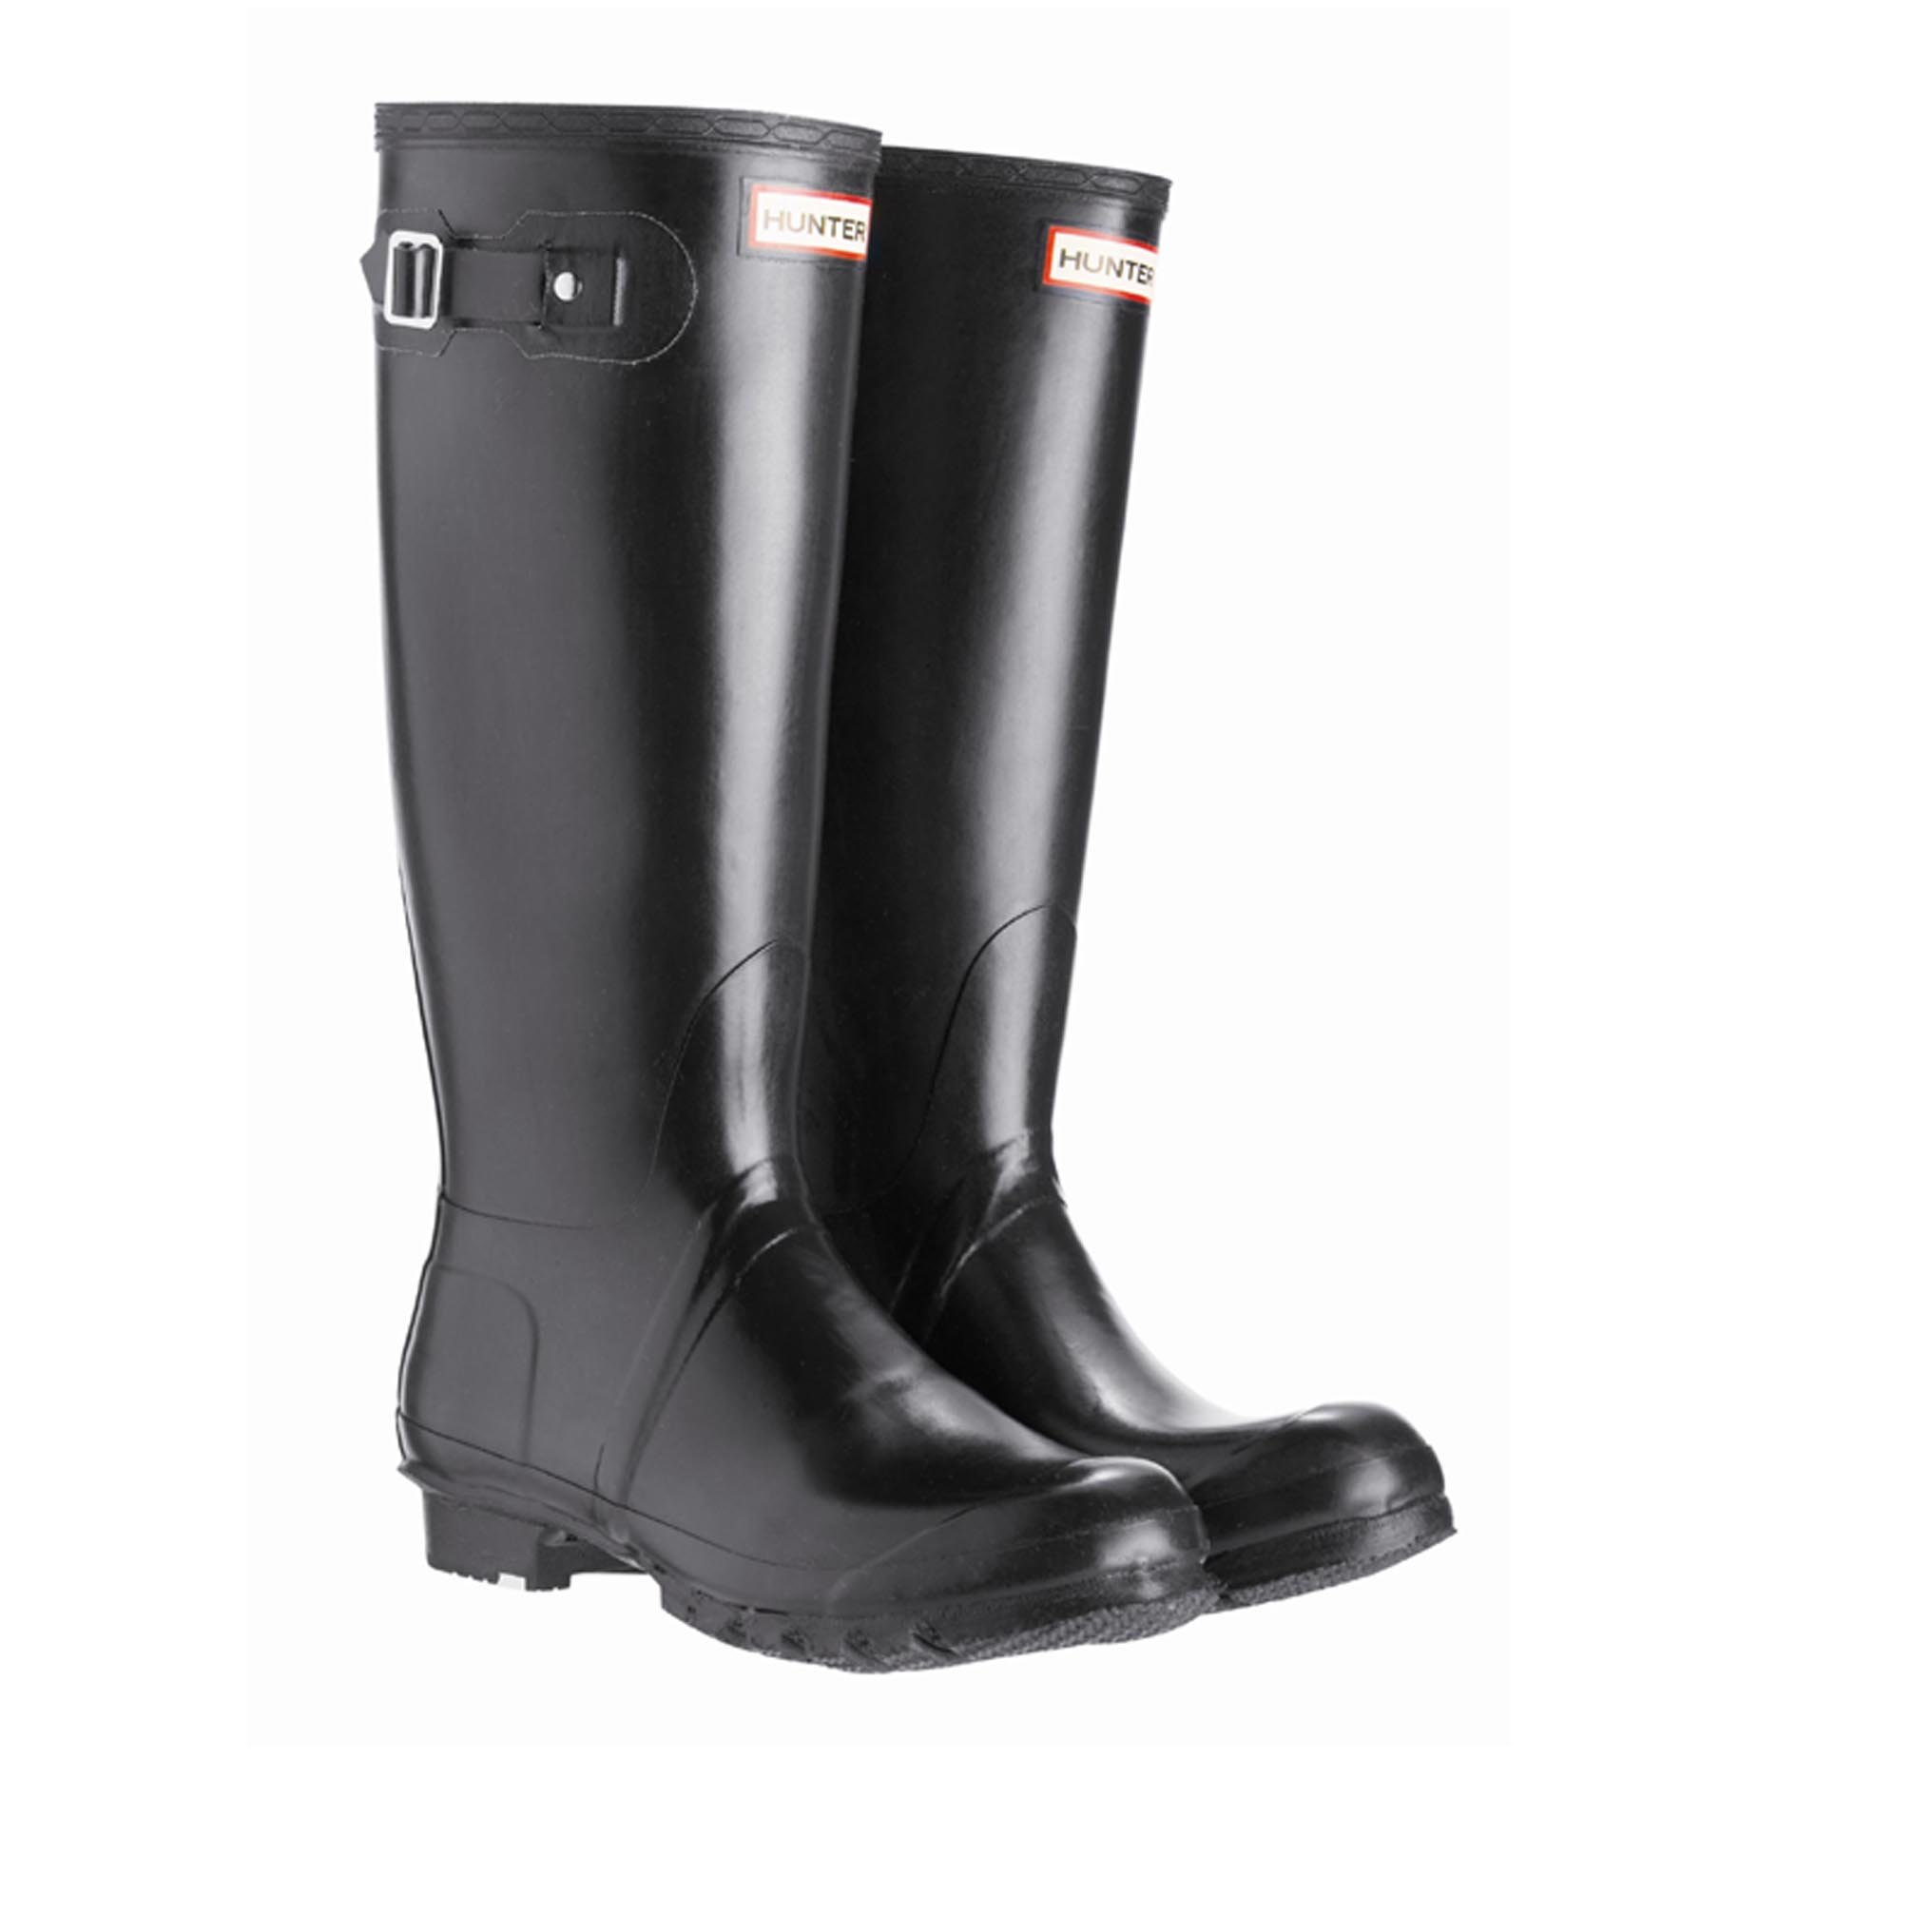 Hunter Women's Original Tall Black Gummistiefel in schwarz